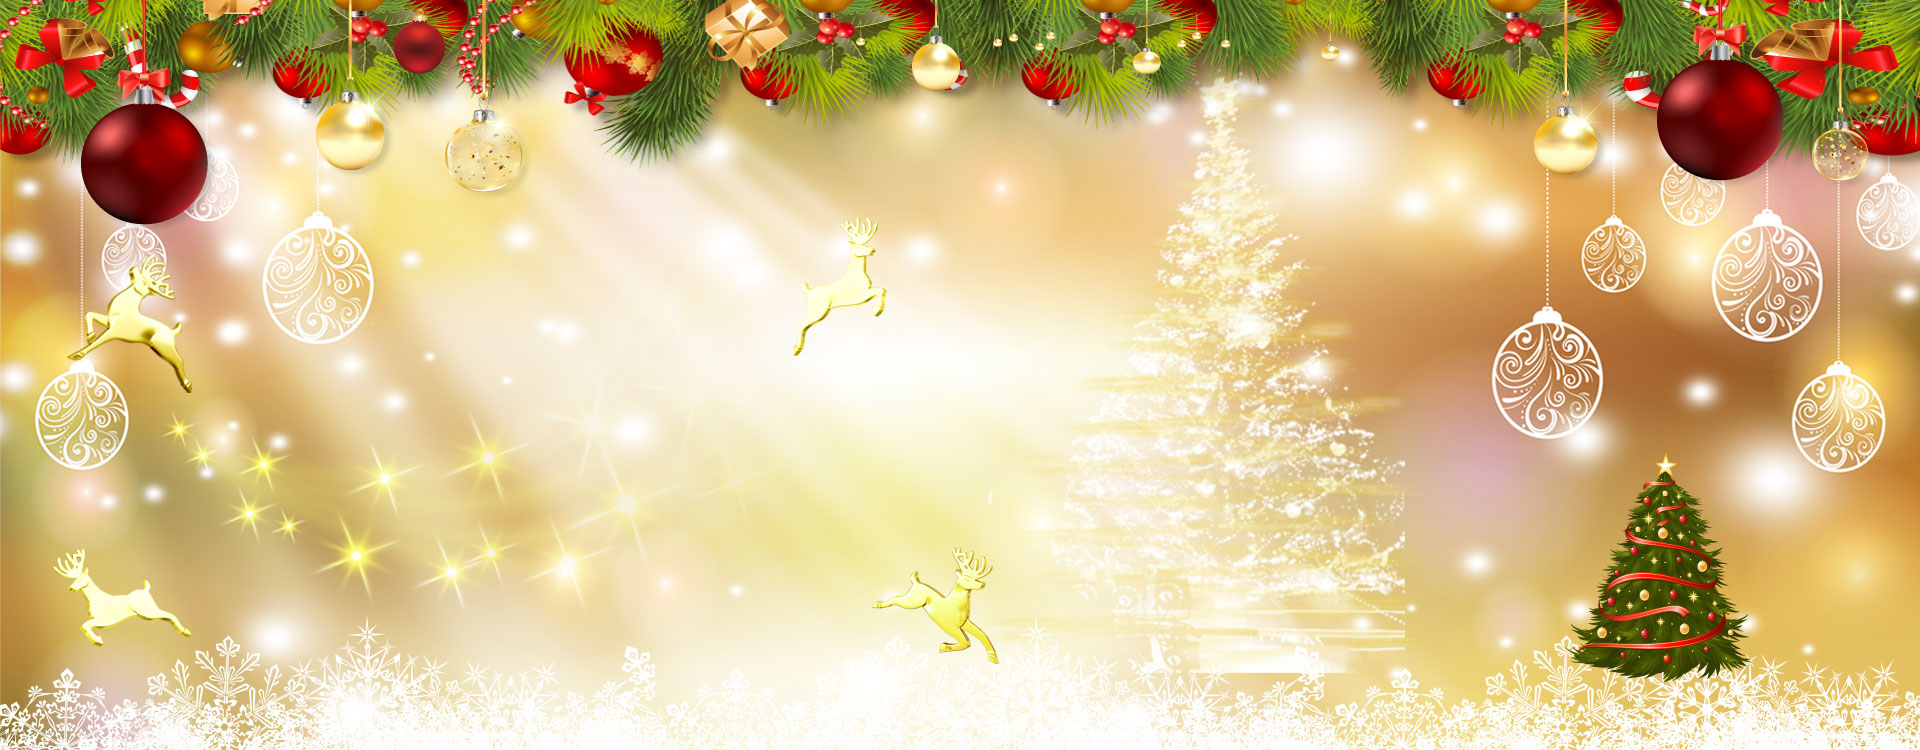 Christmas Background Merry Christmas Christmas